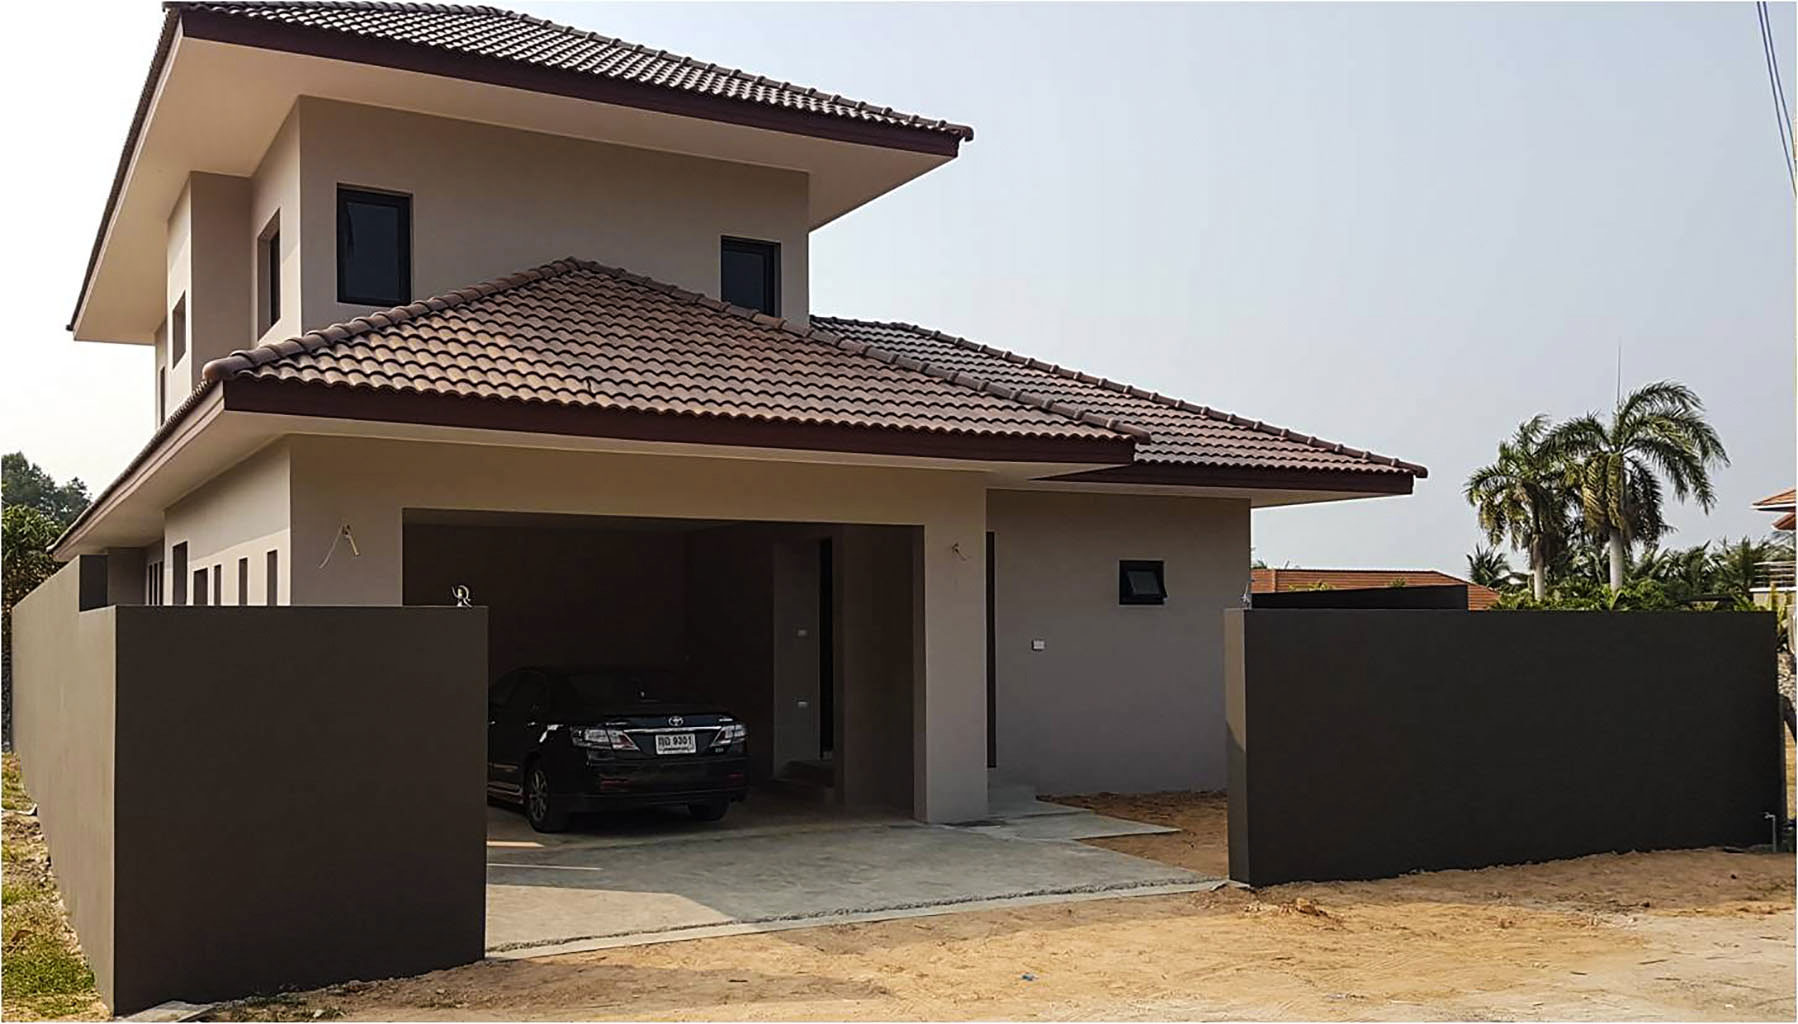 Brand new luxury home pattayatoday pattaya property sale for-sale